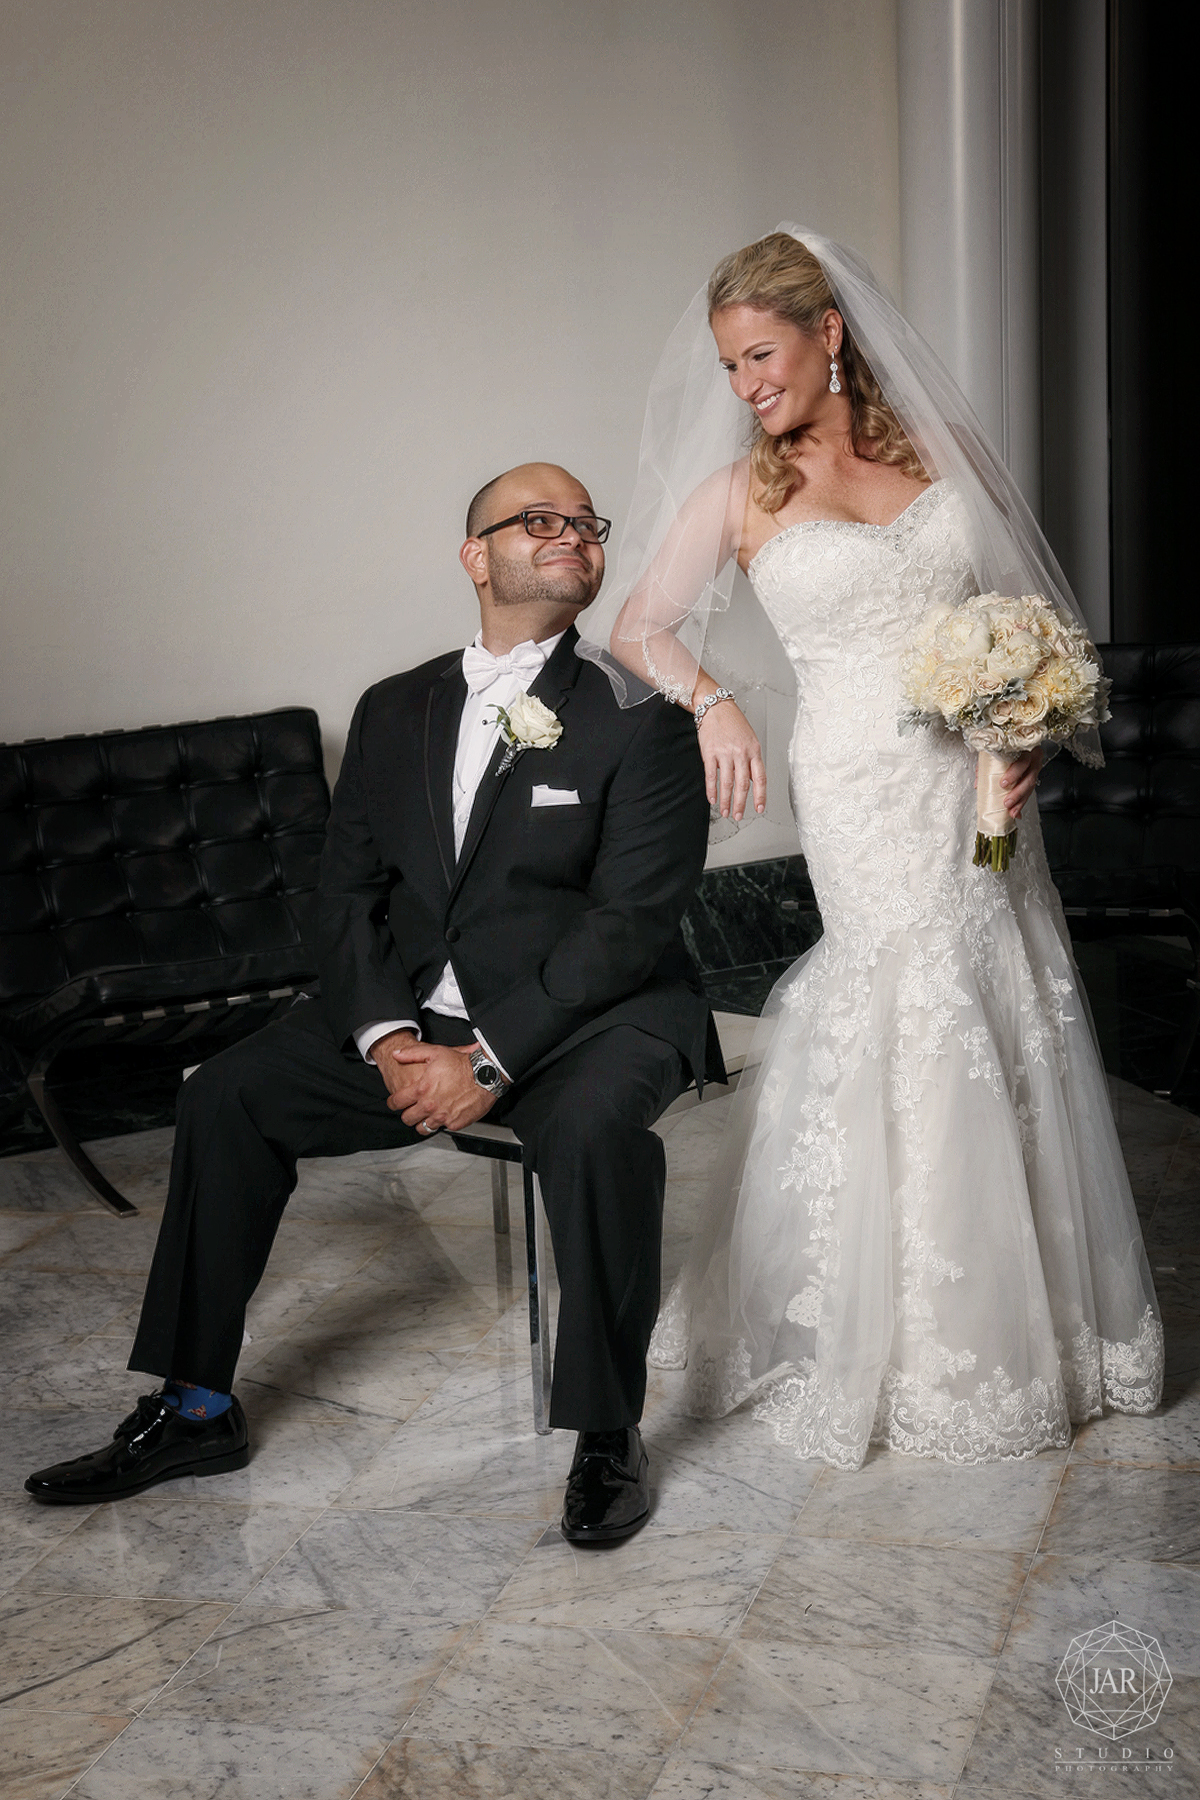 16-orlando-fl-award-winning-best-wedding-photographer.JPG